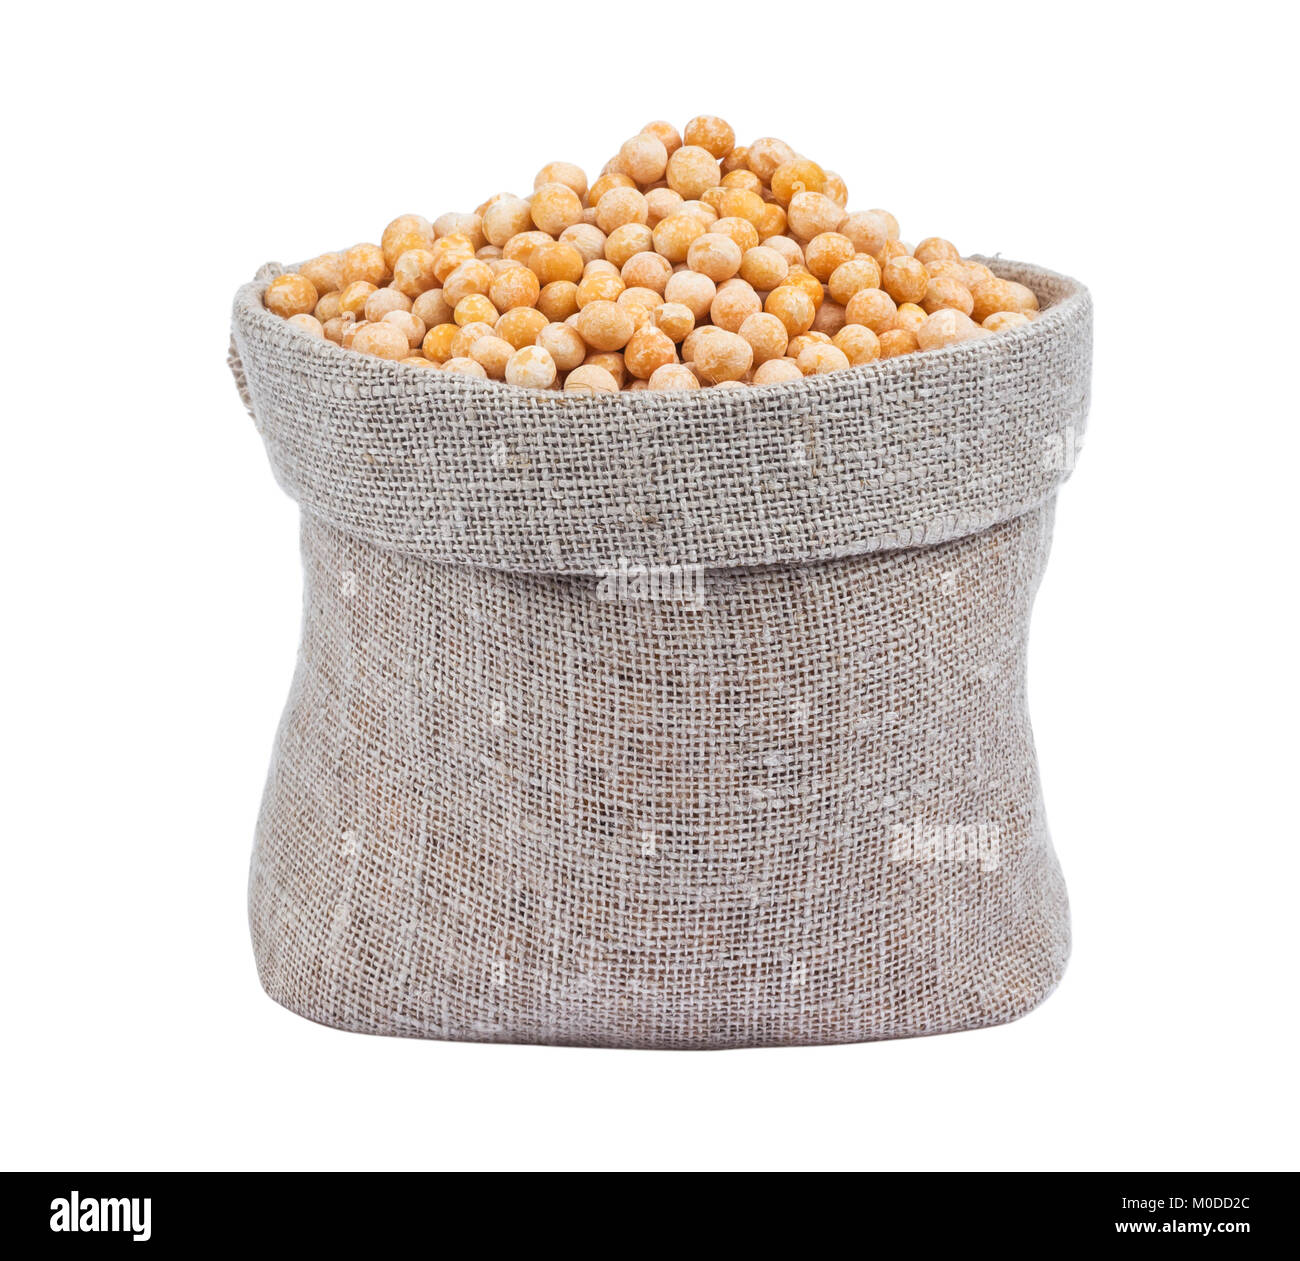 Dried peas in bag isolated on white background - Stock Image